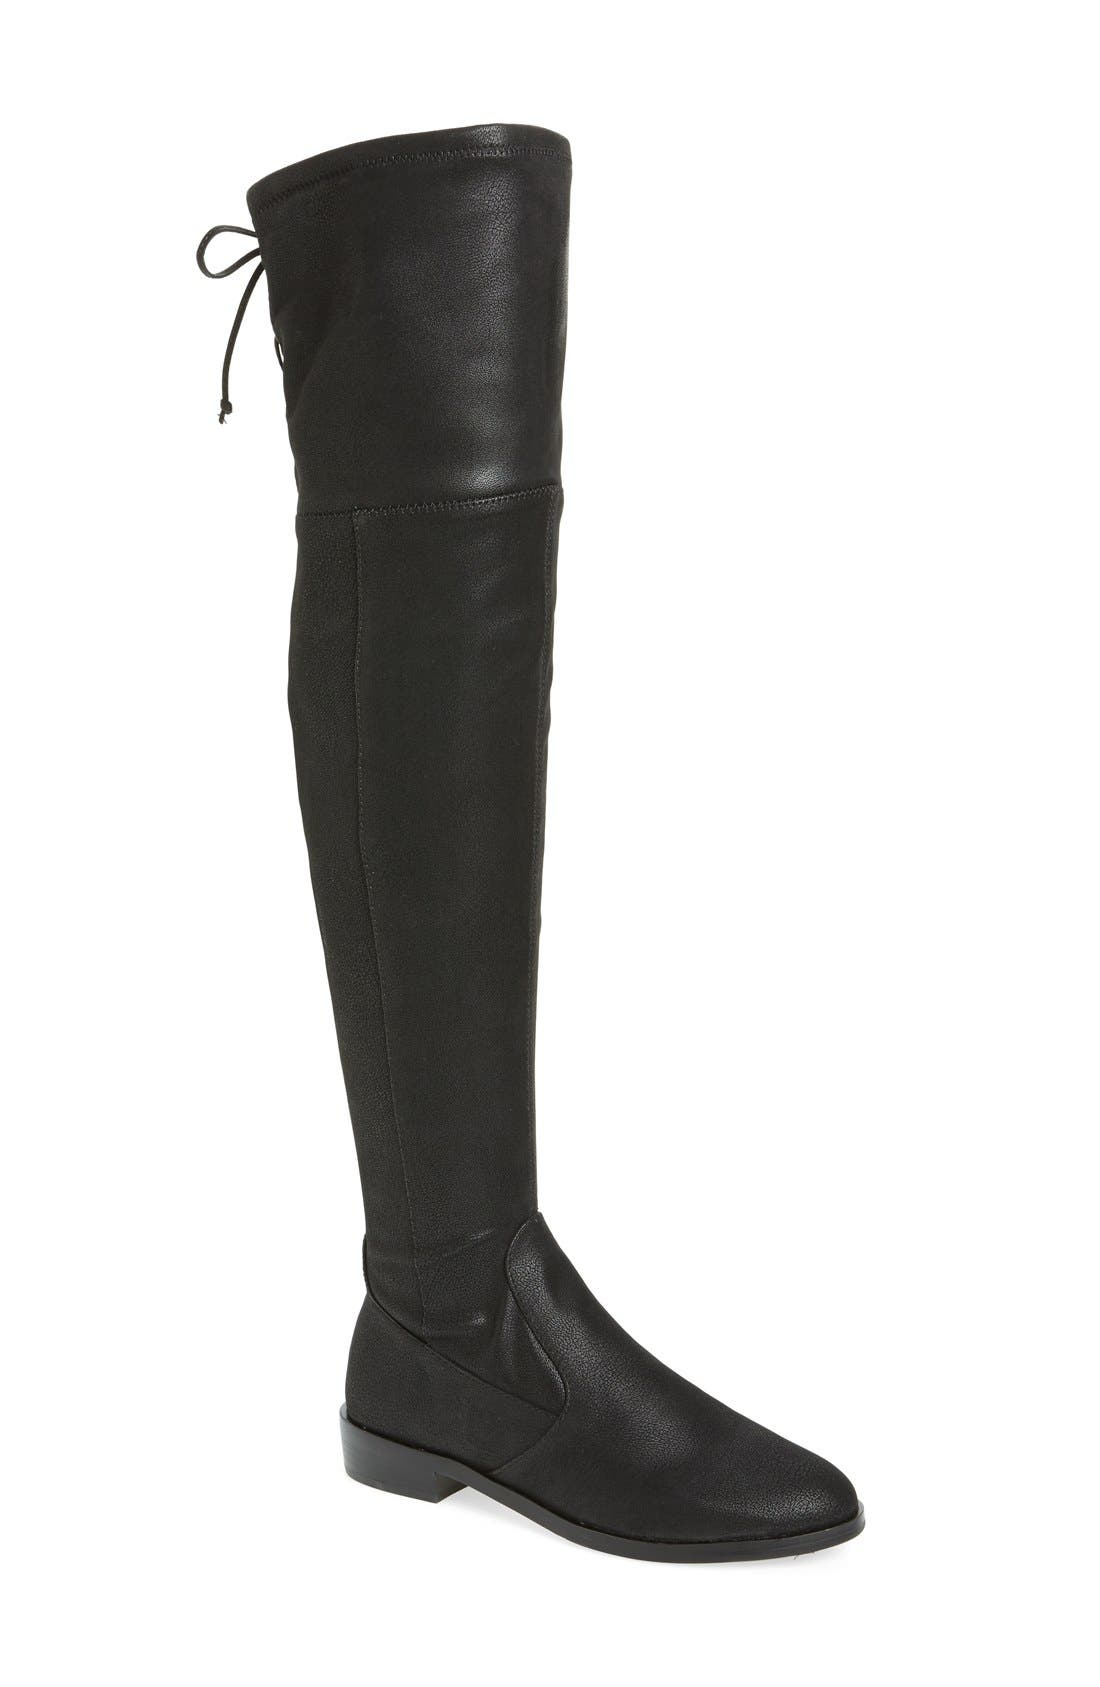 Main Image - Vince Camuto Crisintha Over the Knee Boot (Women)